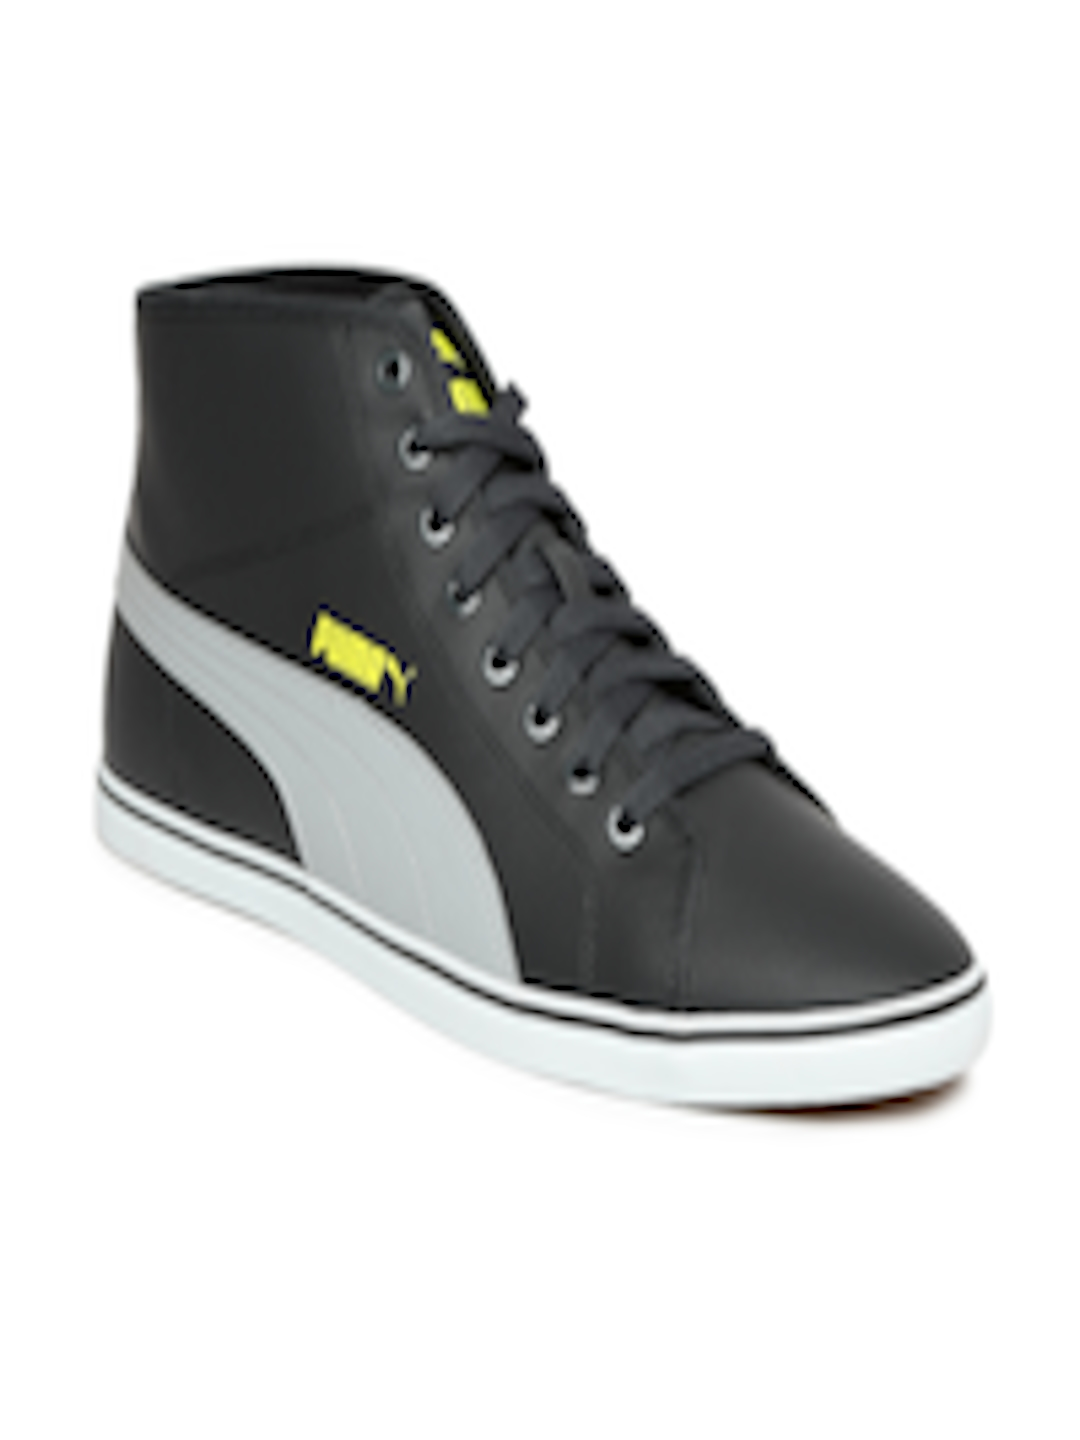 Buy Puma Men Grey Solid Synthetic Leather Mid Top Elsu V2 Mid SL Sneakers -  Casual Shoes for Men 2030536  f5188469e